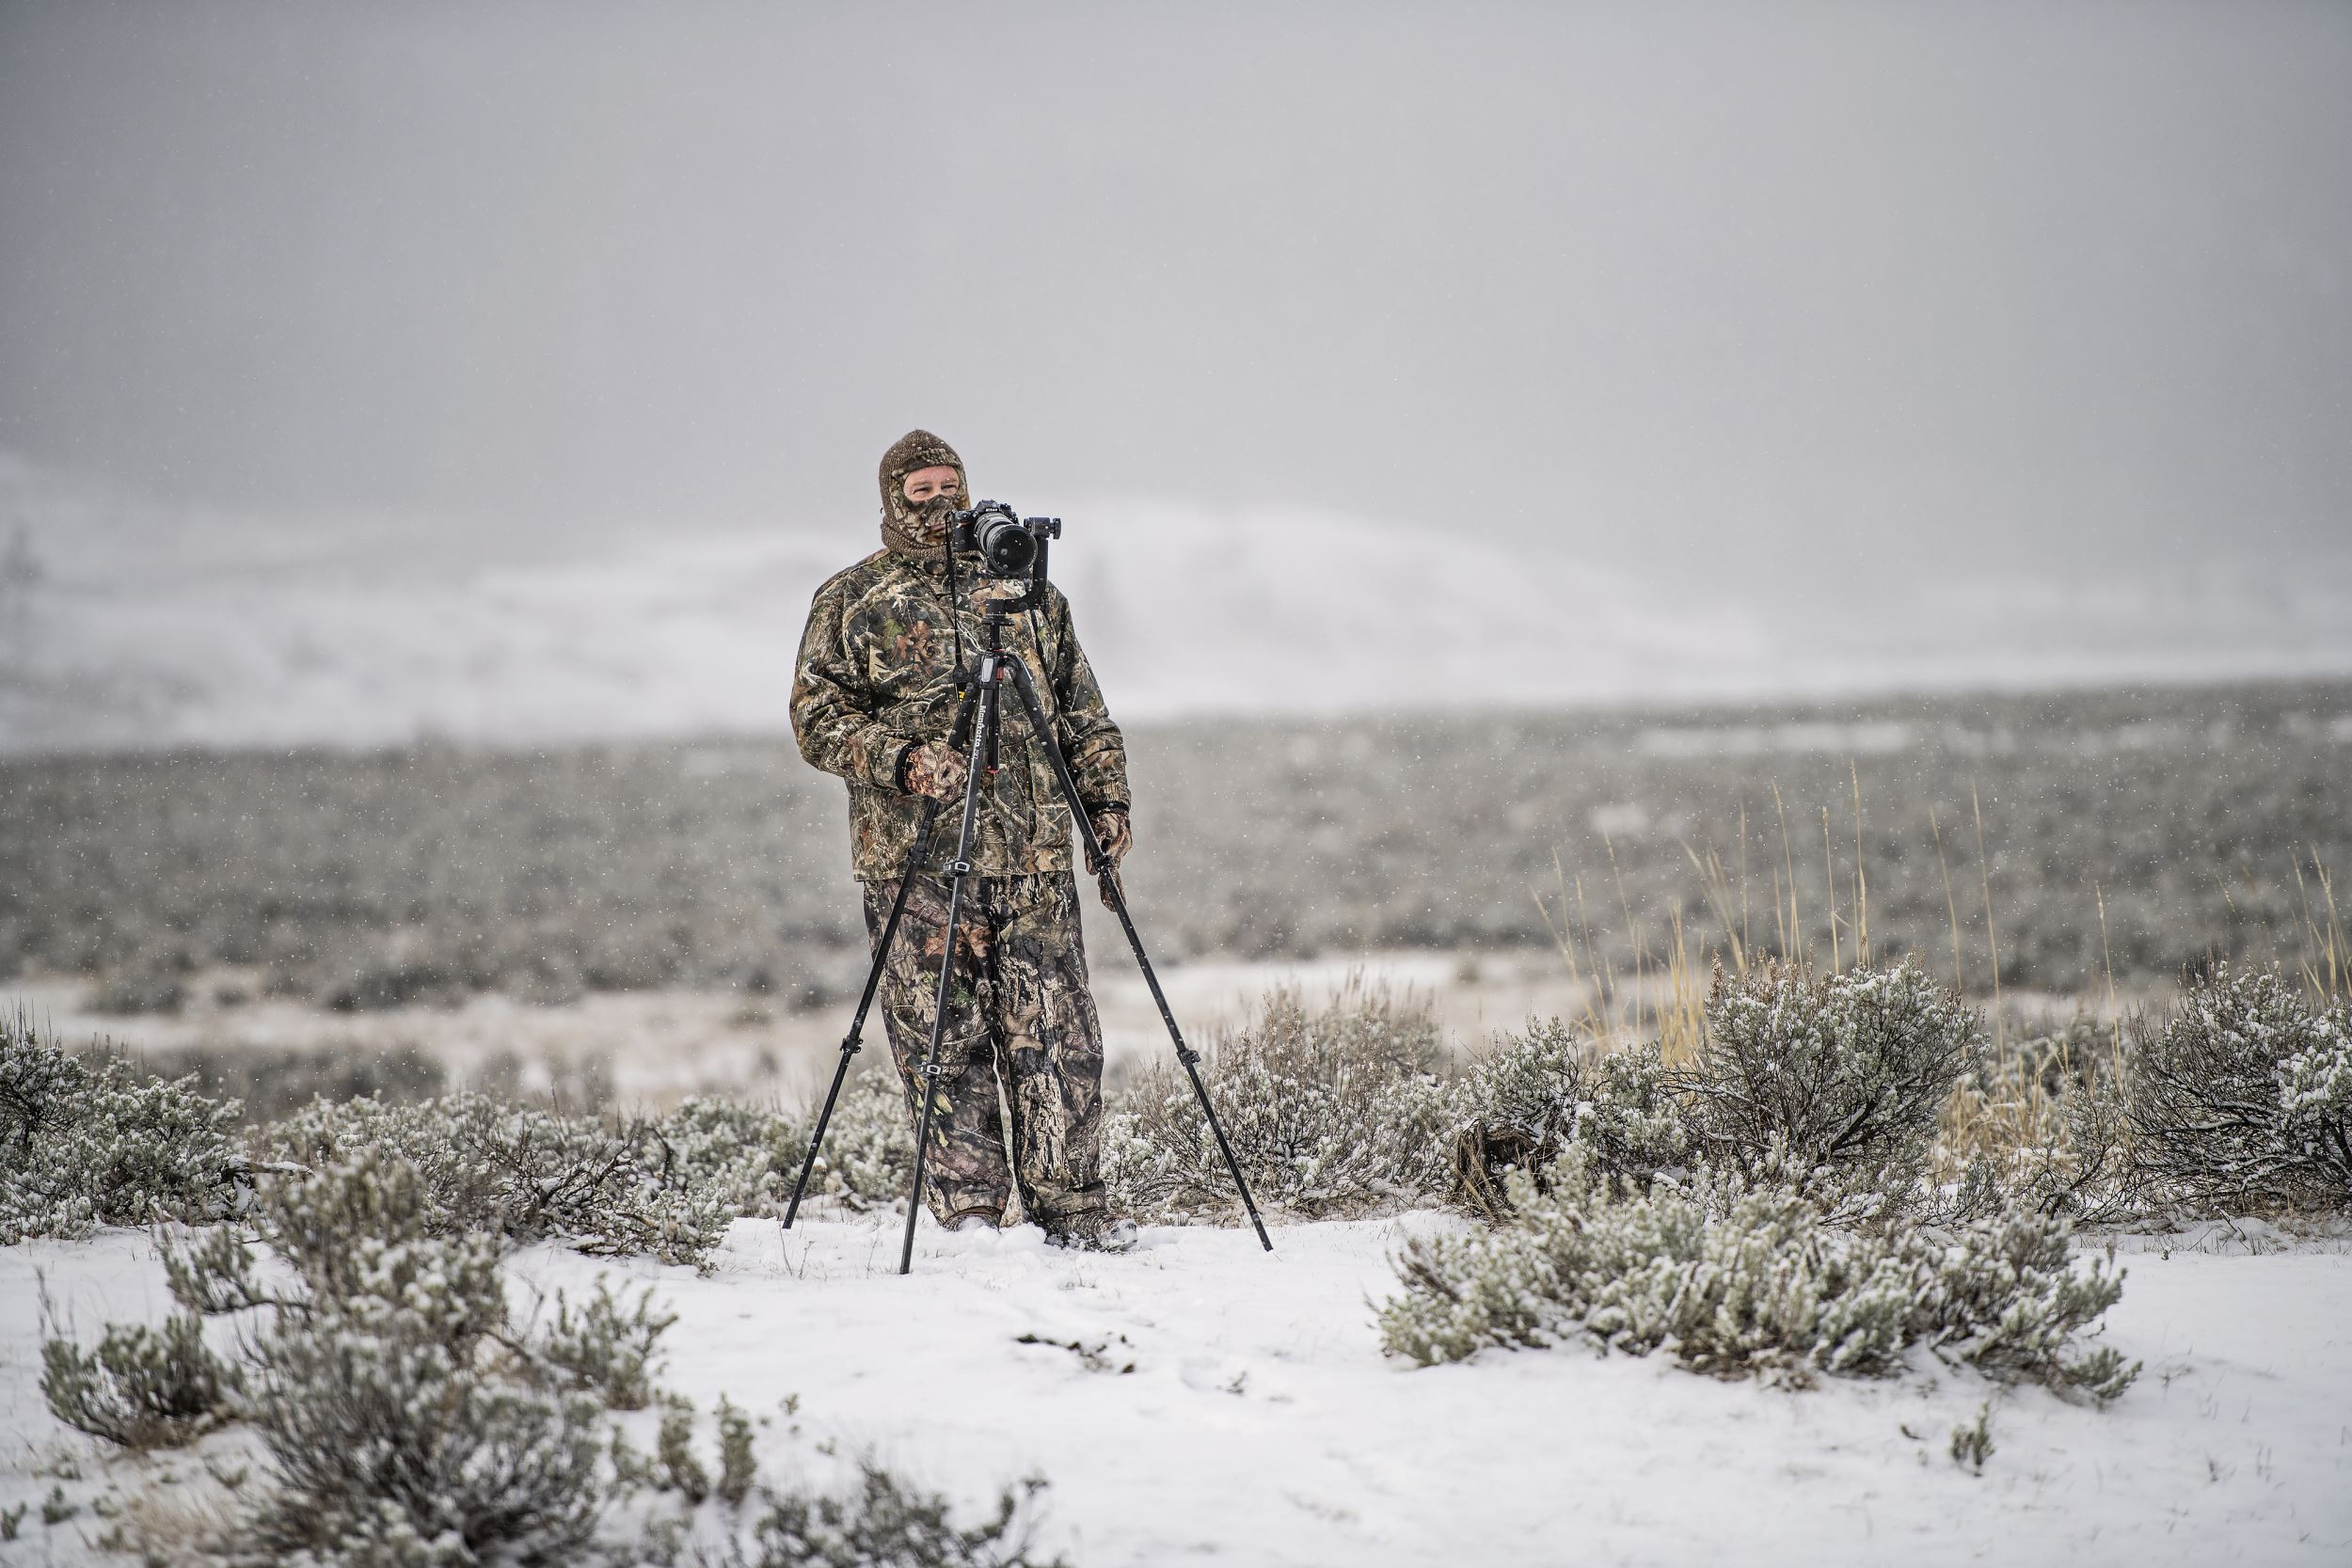 photographer in camo in snow